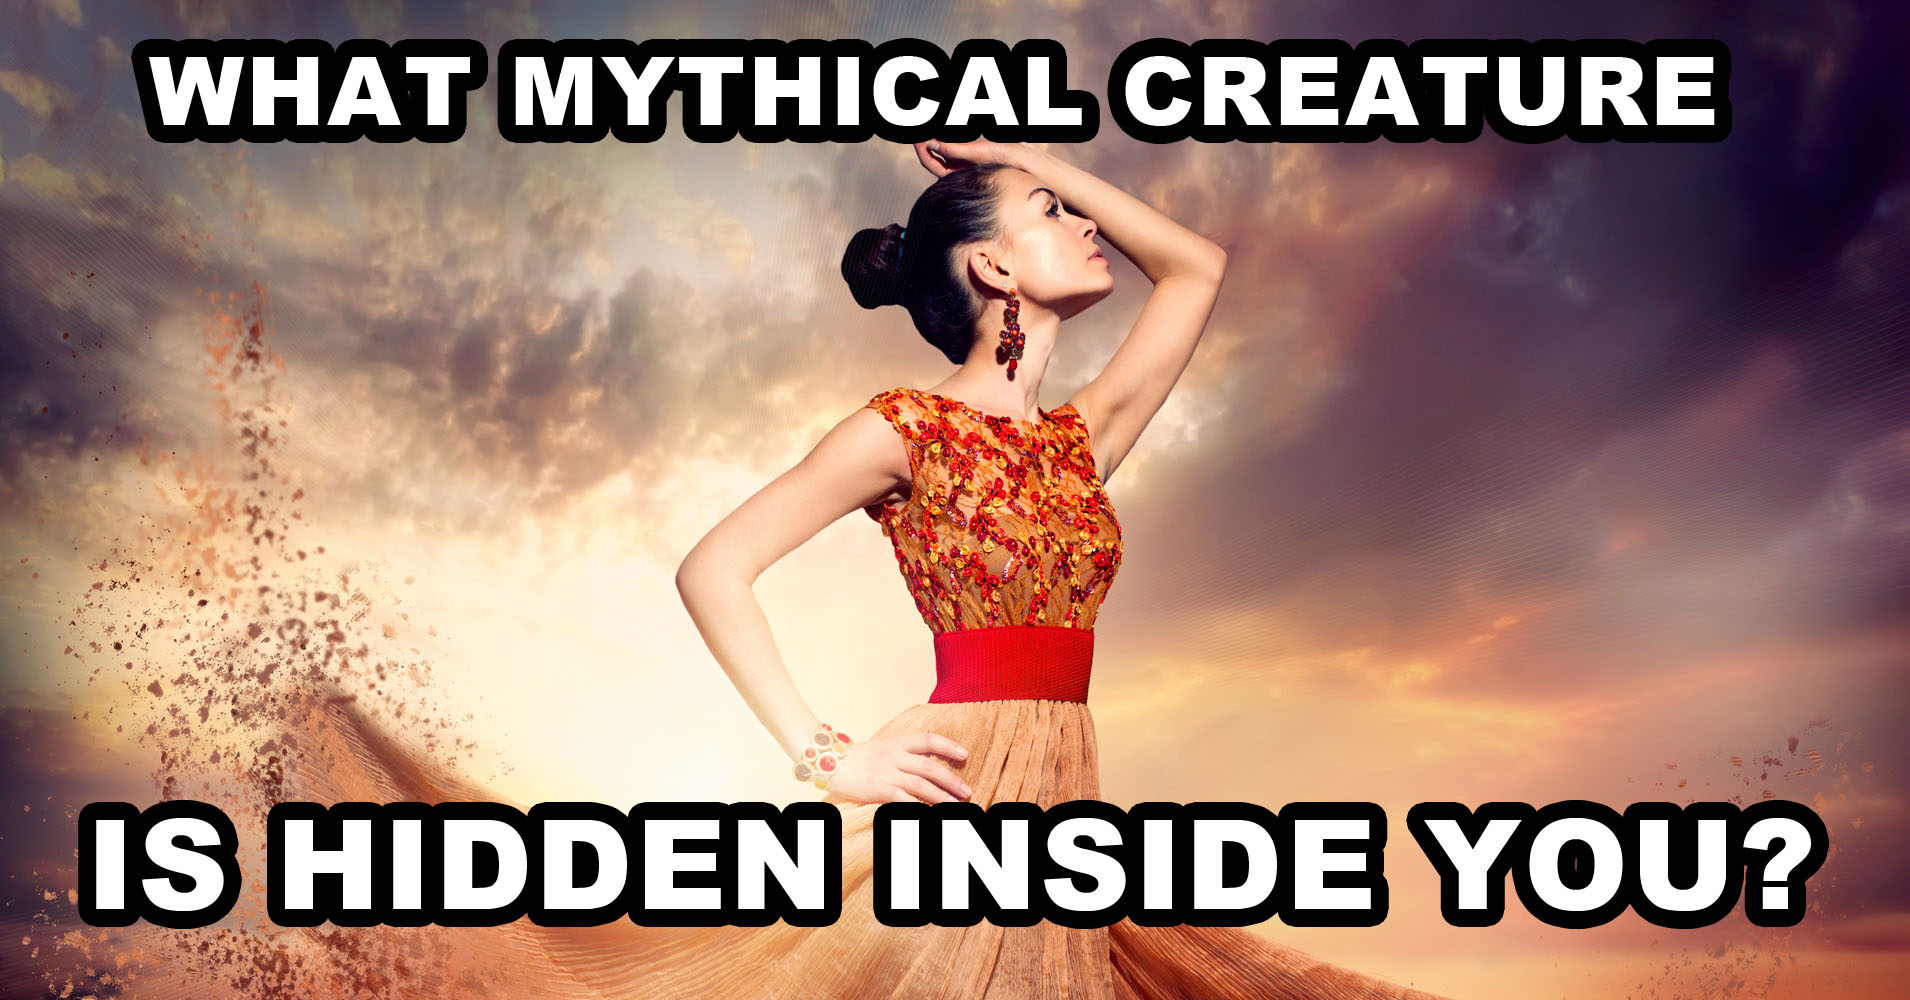 what mythical creature is hidden inside you  - quiz